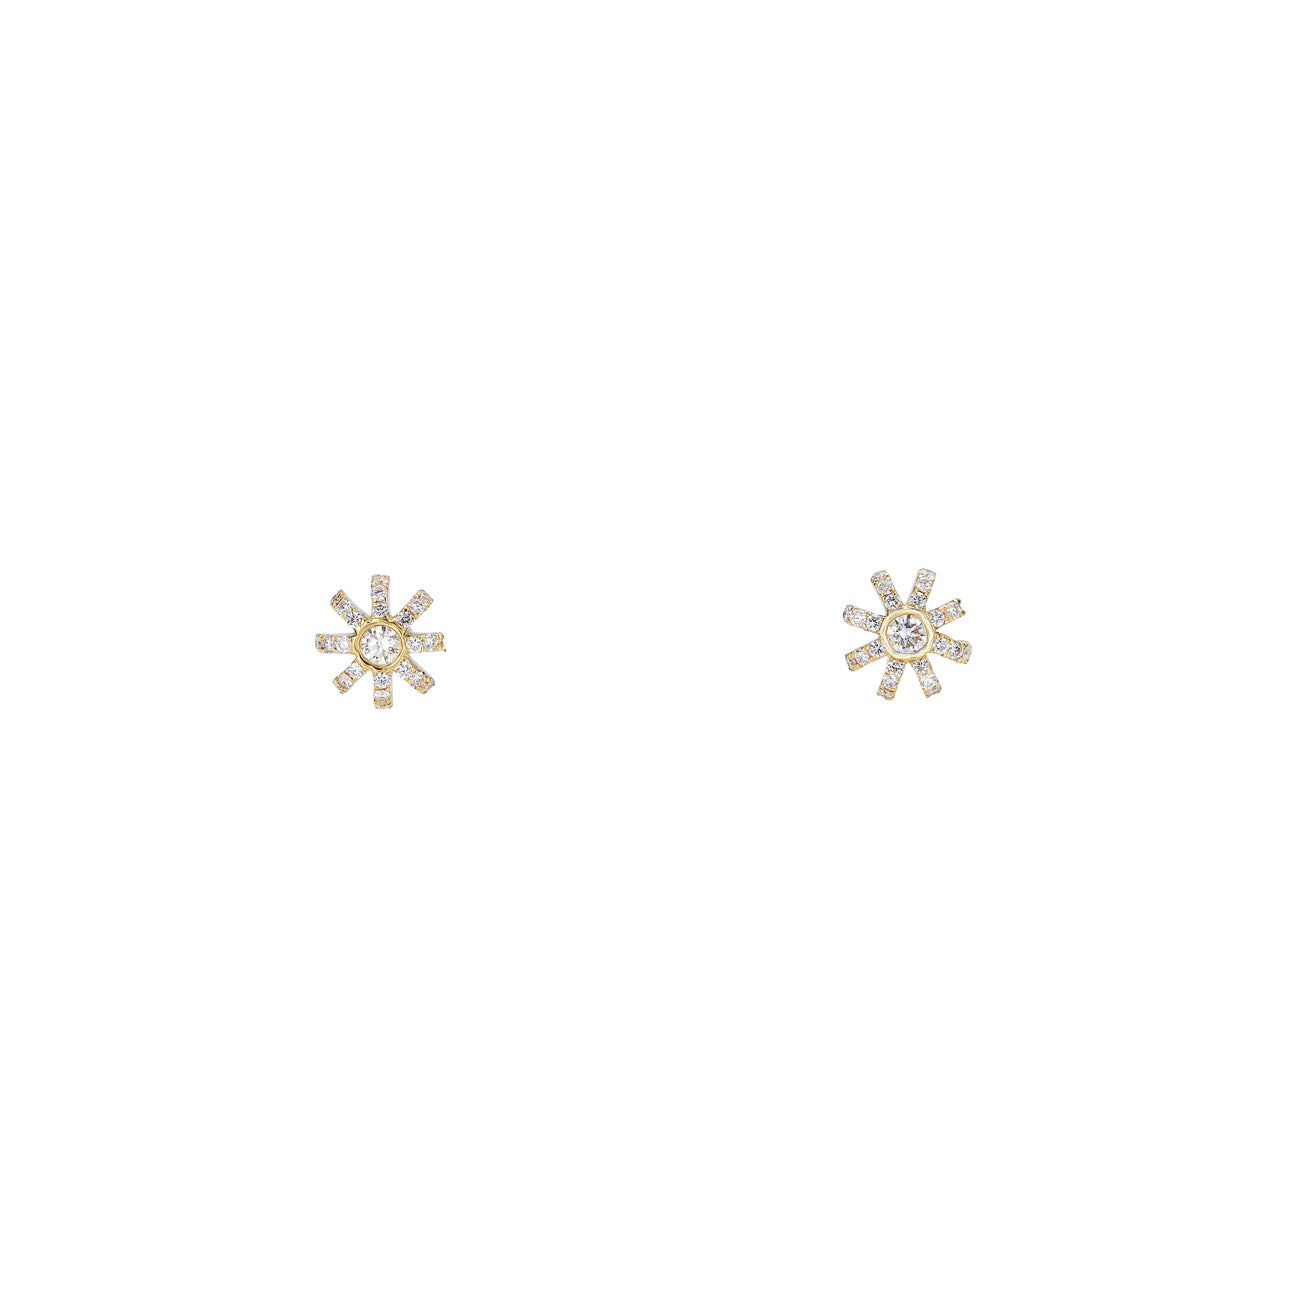 Image of Sunburst Stud Earrings